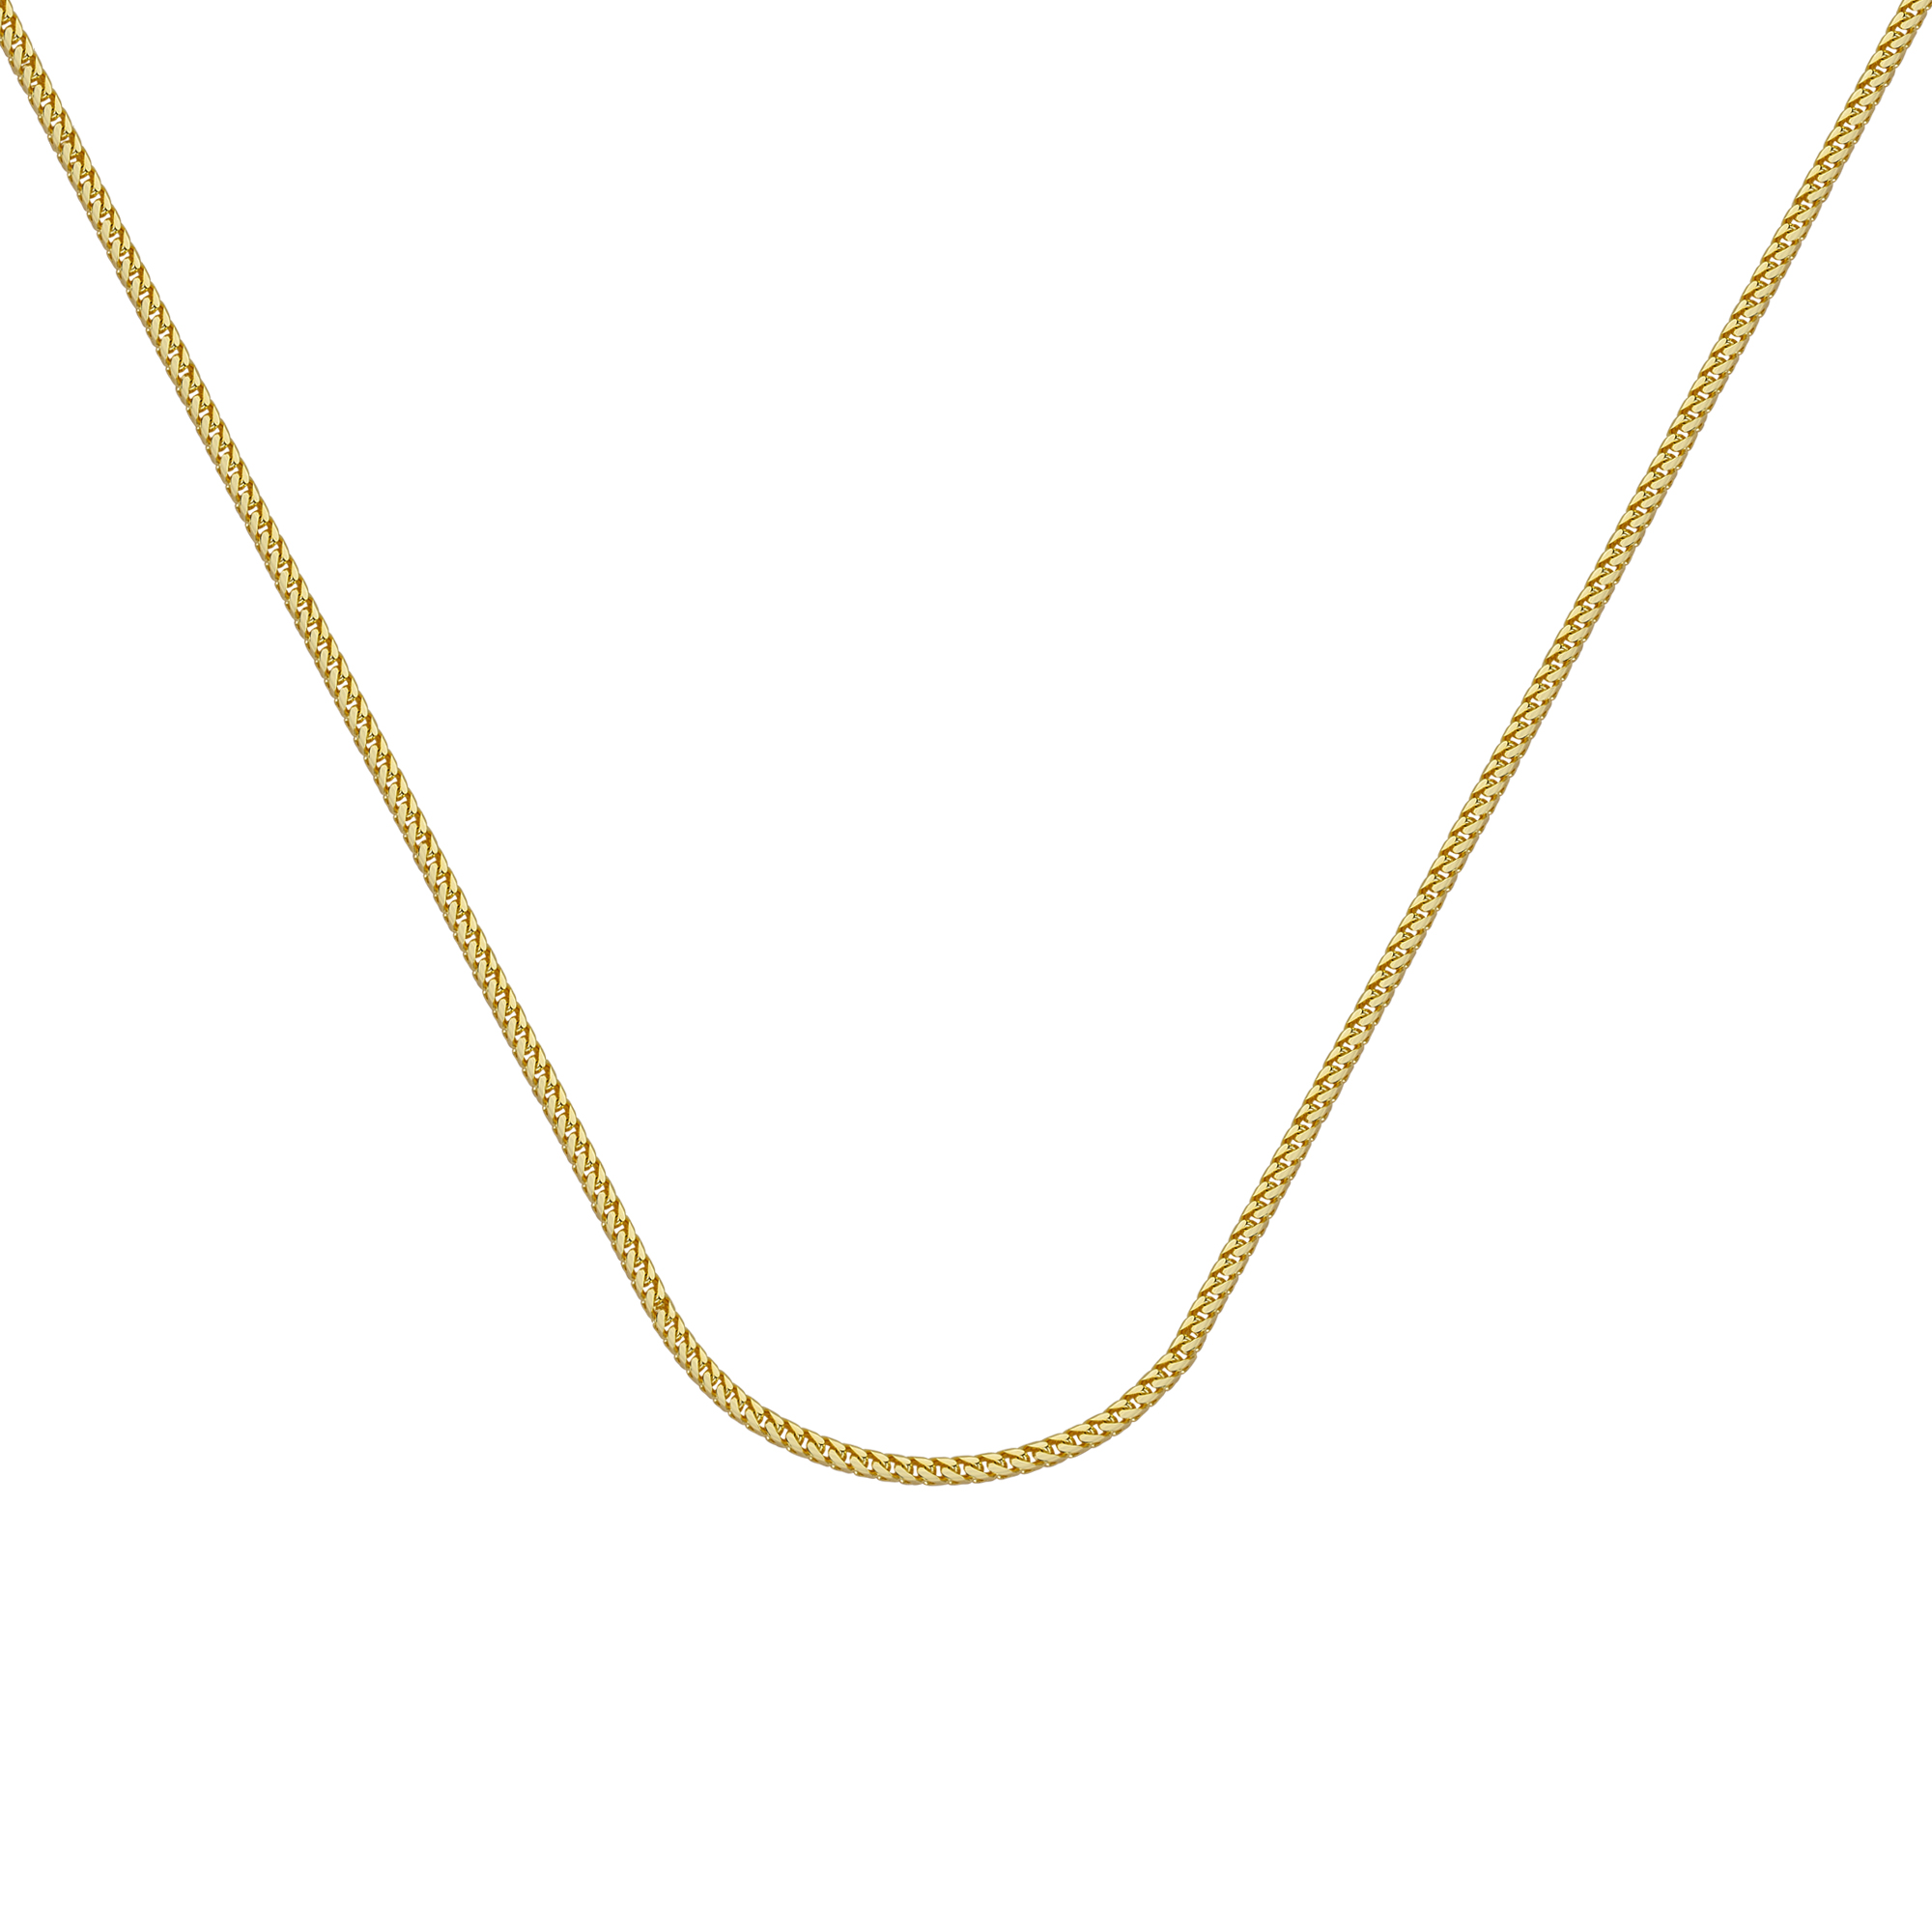 Franco Chain , 14Kt Gold  Franco Chain With Lobster Lock / 24